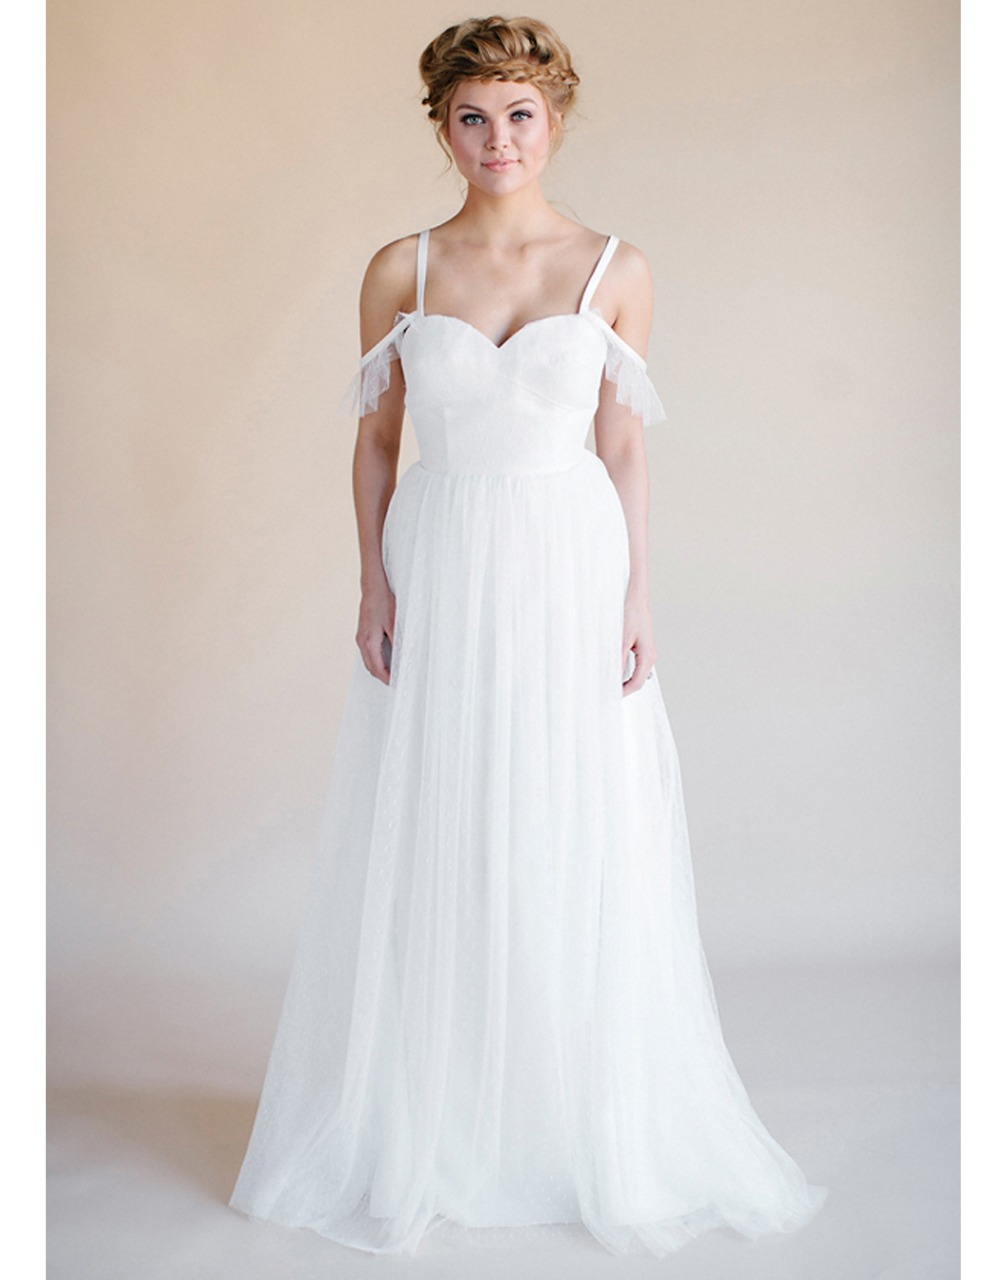 Plus size wedding dresses for the beach for Plus size wedding dresses near me